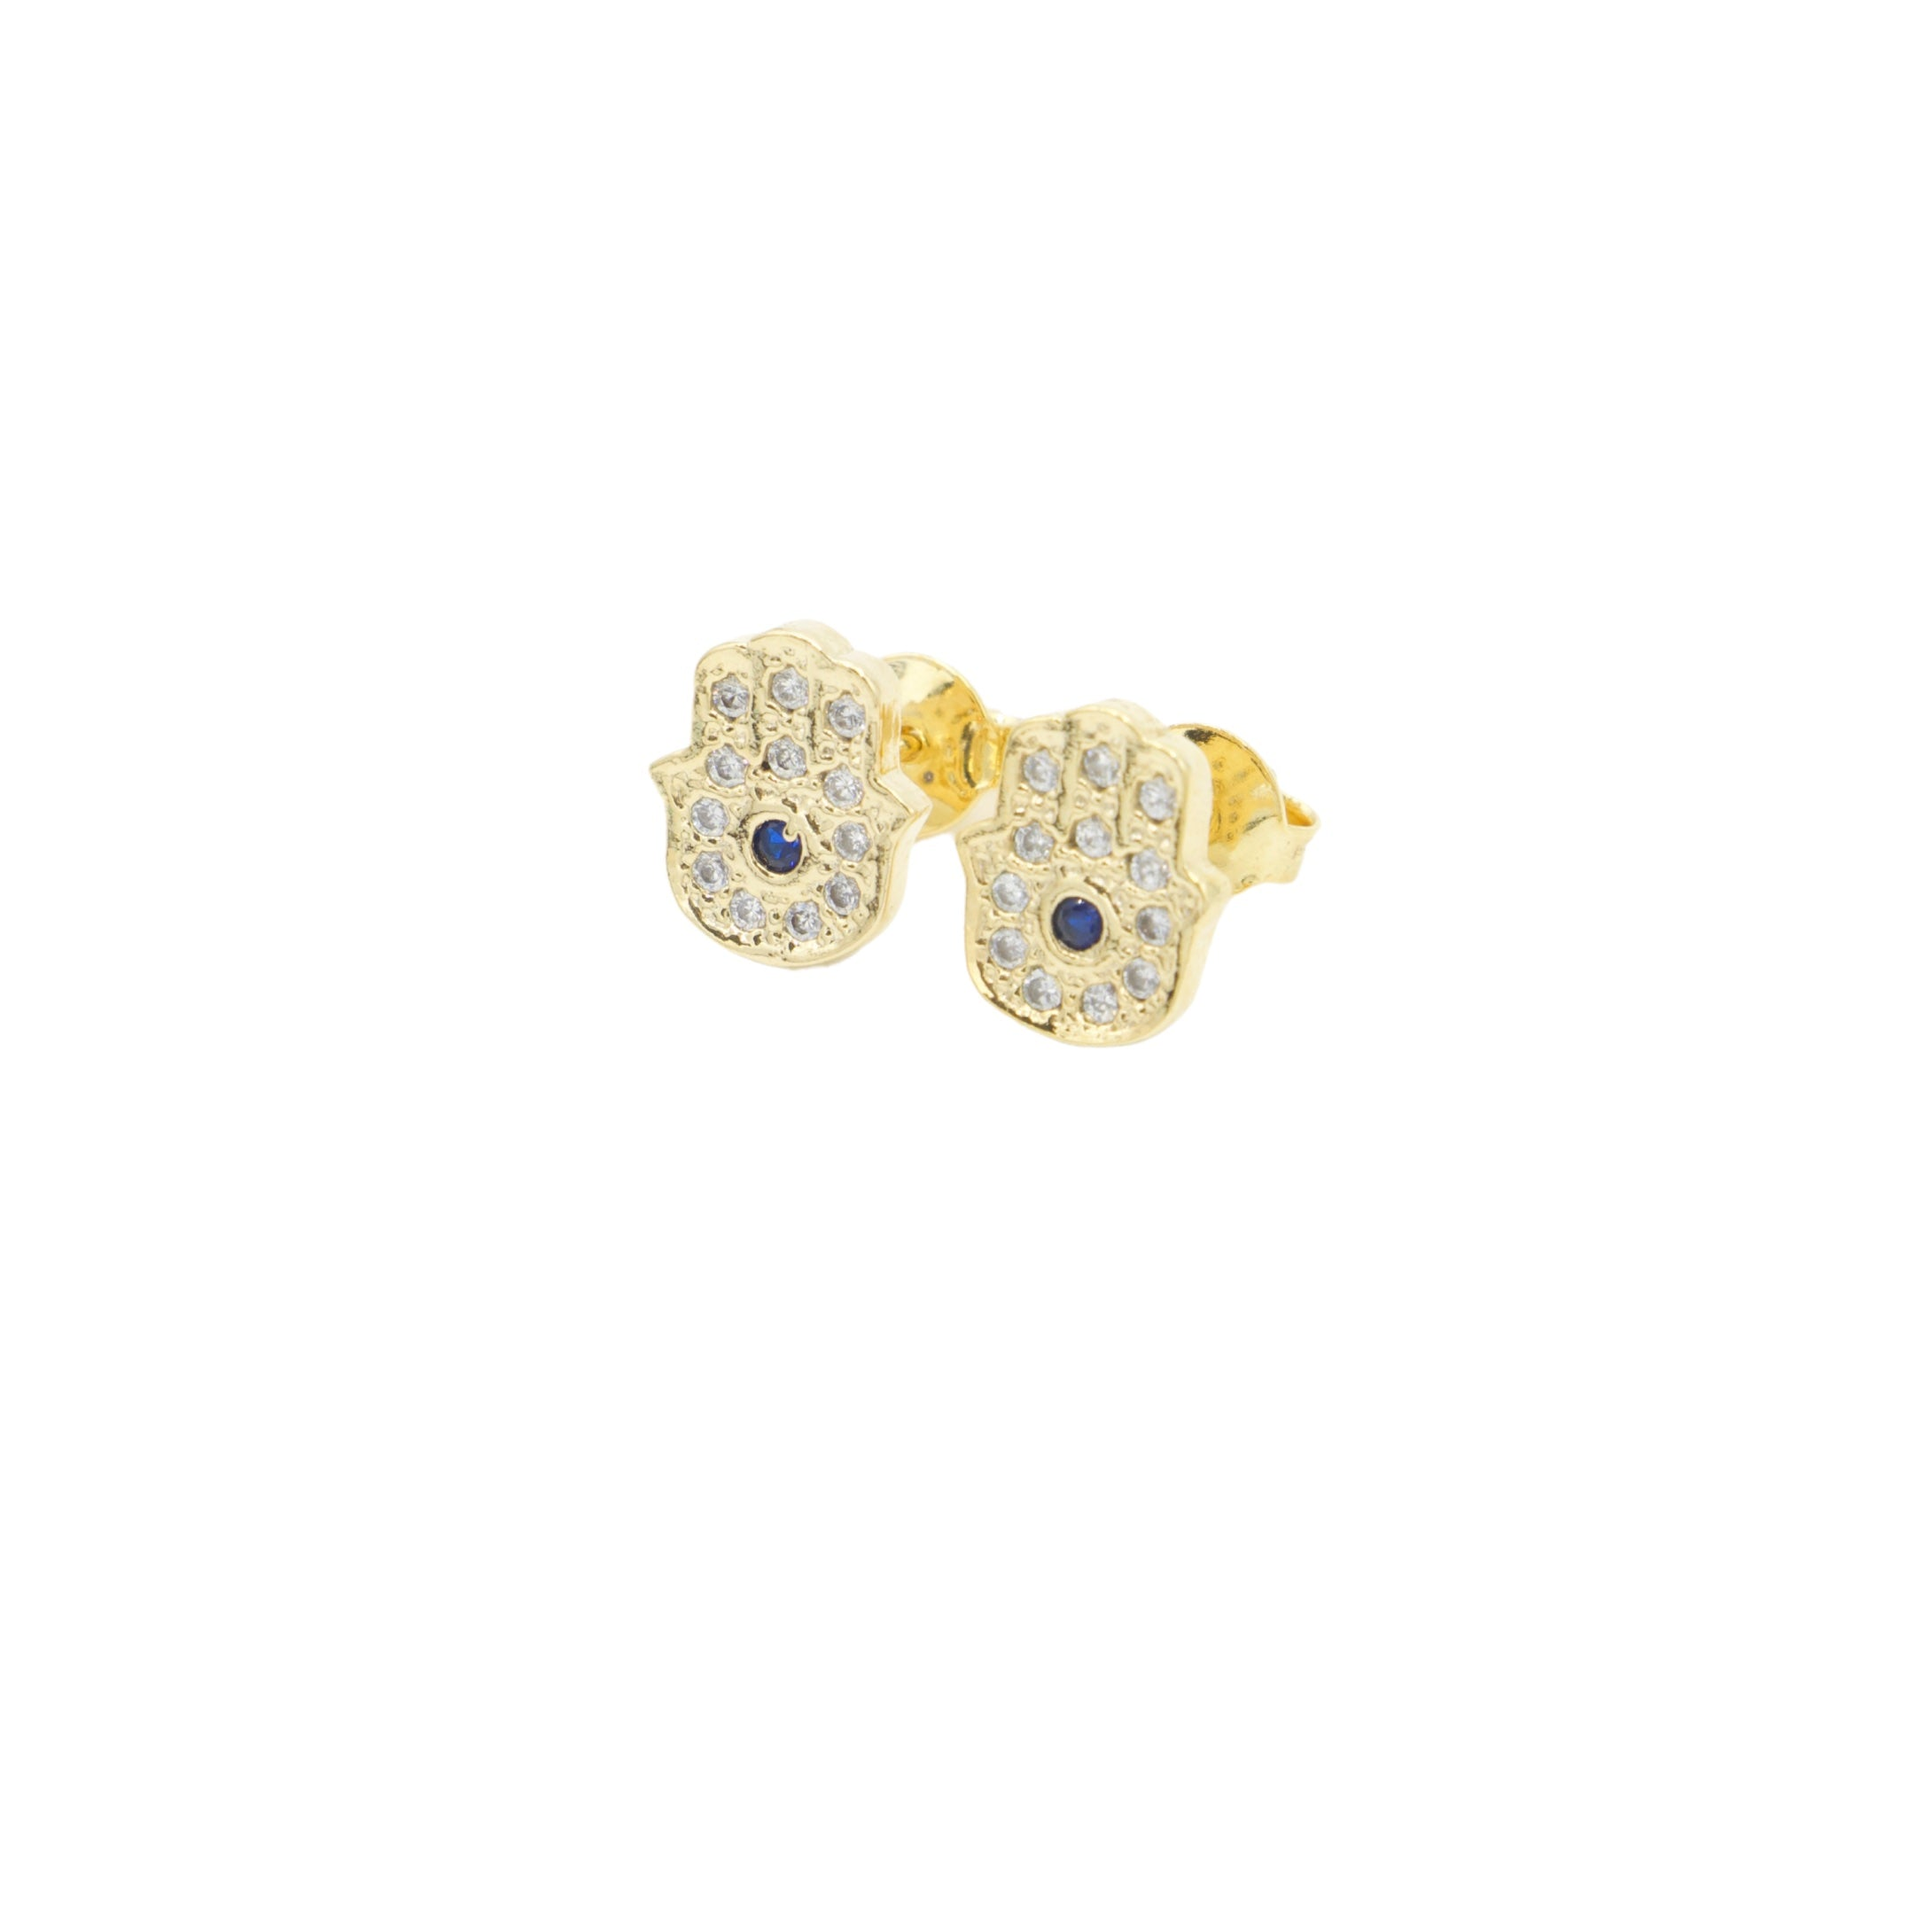 AW Boutique's Hamsa Stud Earrings are filled with bright clear and blue cubic zirconia stones that make them the perfect earring to wear everyday to lift a casual look.  The Hamsa is a protective symbol that will bring their owner happiness, luck, health and good fortune.  The central blue cubic zirconia stone forms an evil eye, giving the owner extra protection to ward off the evil eye gaze and negative energies.